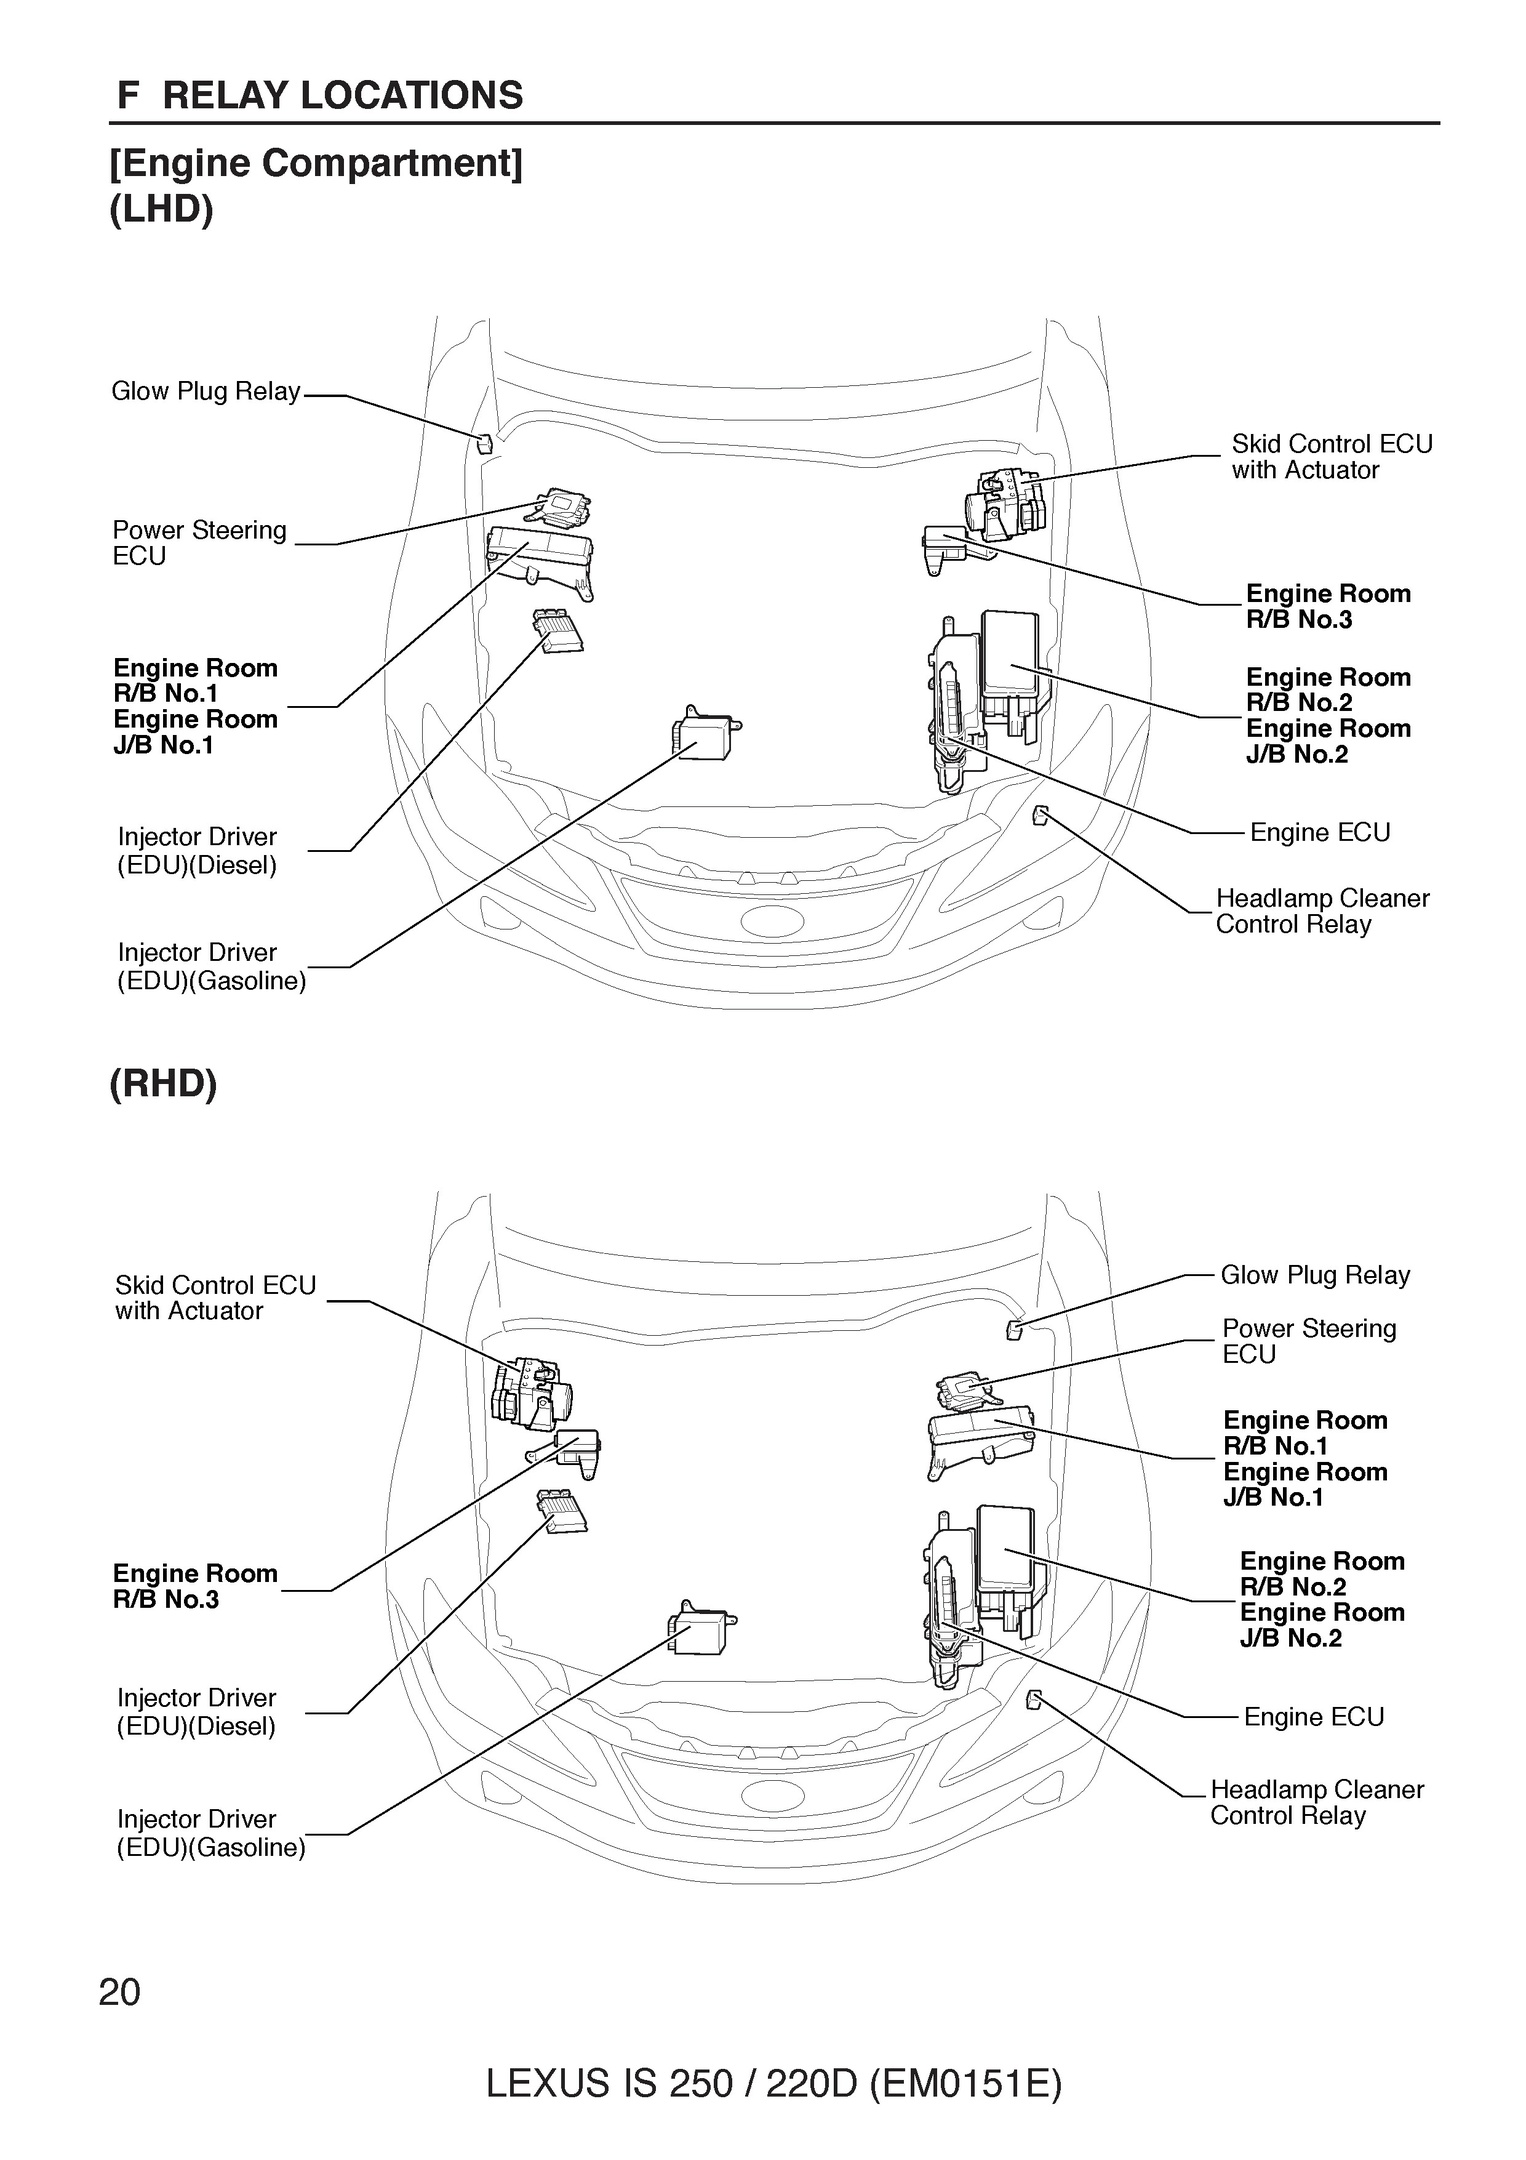 Free 2005 Lexus Is250 220d Oem Electrical Wiring Control Relay Overall Diagram